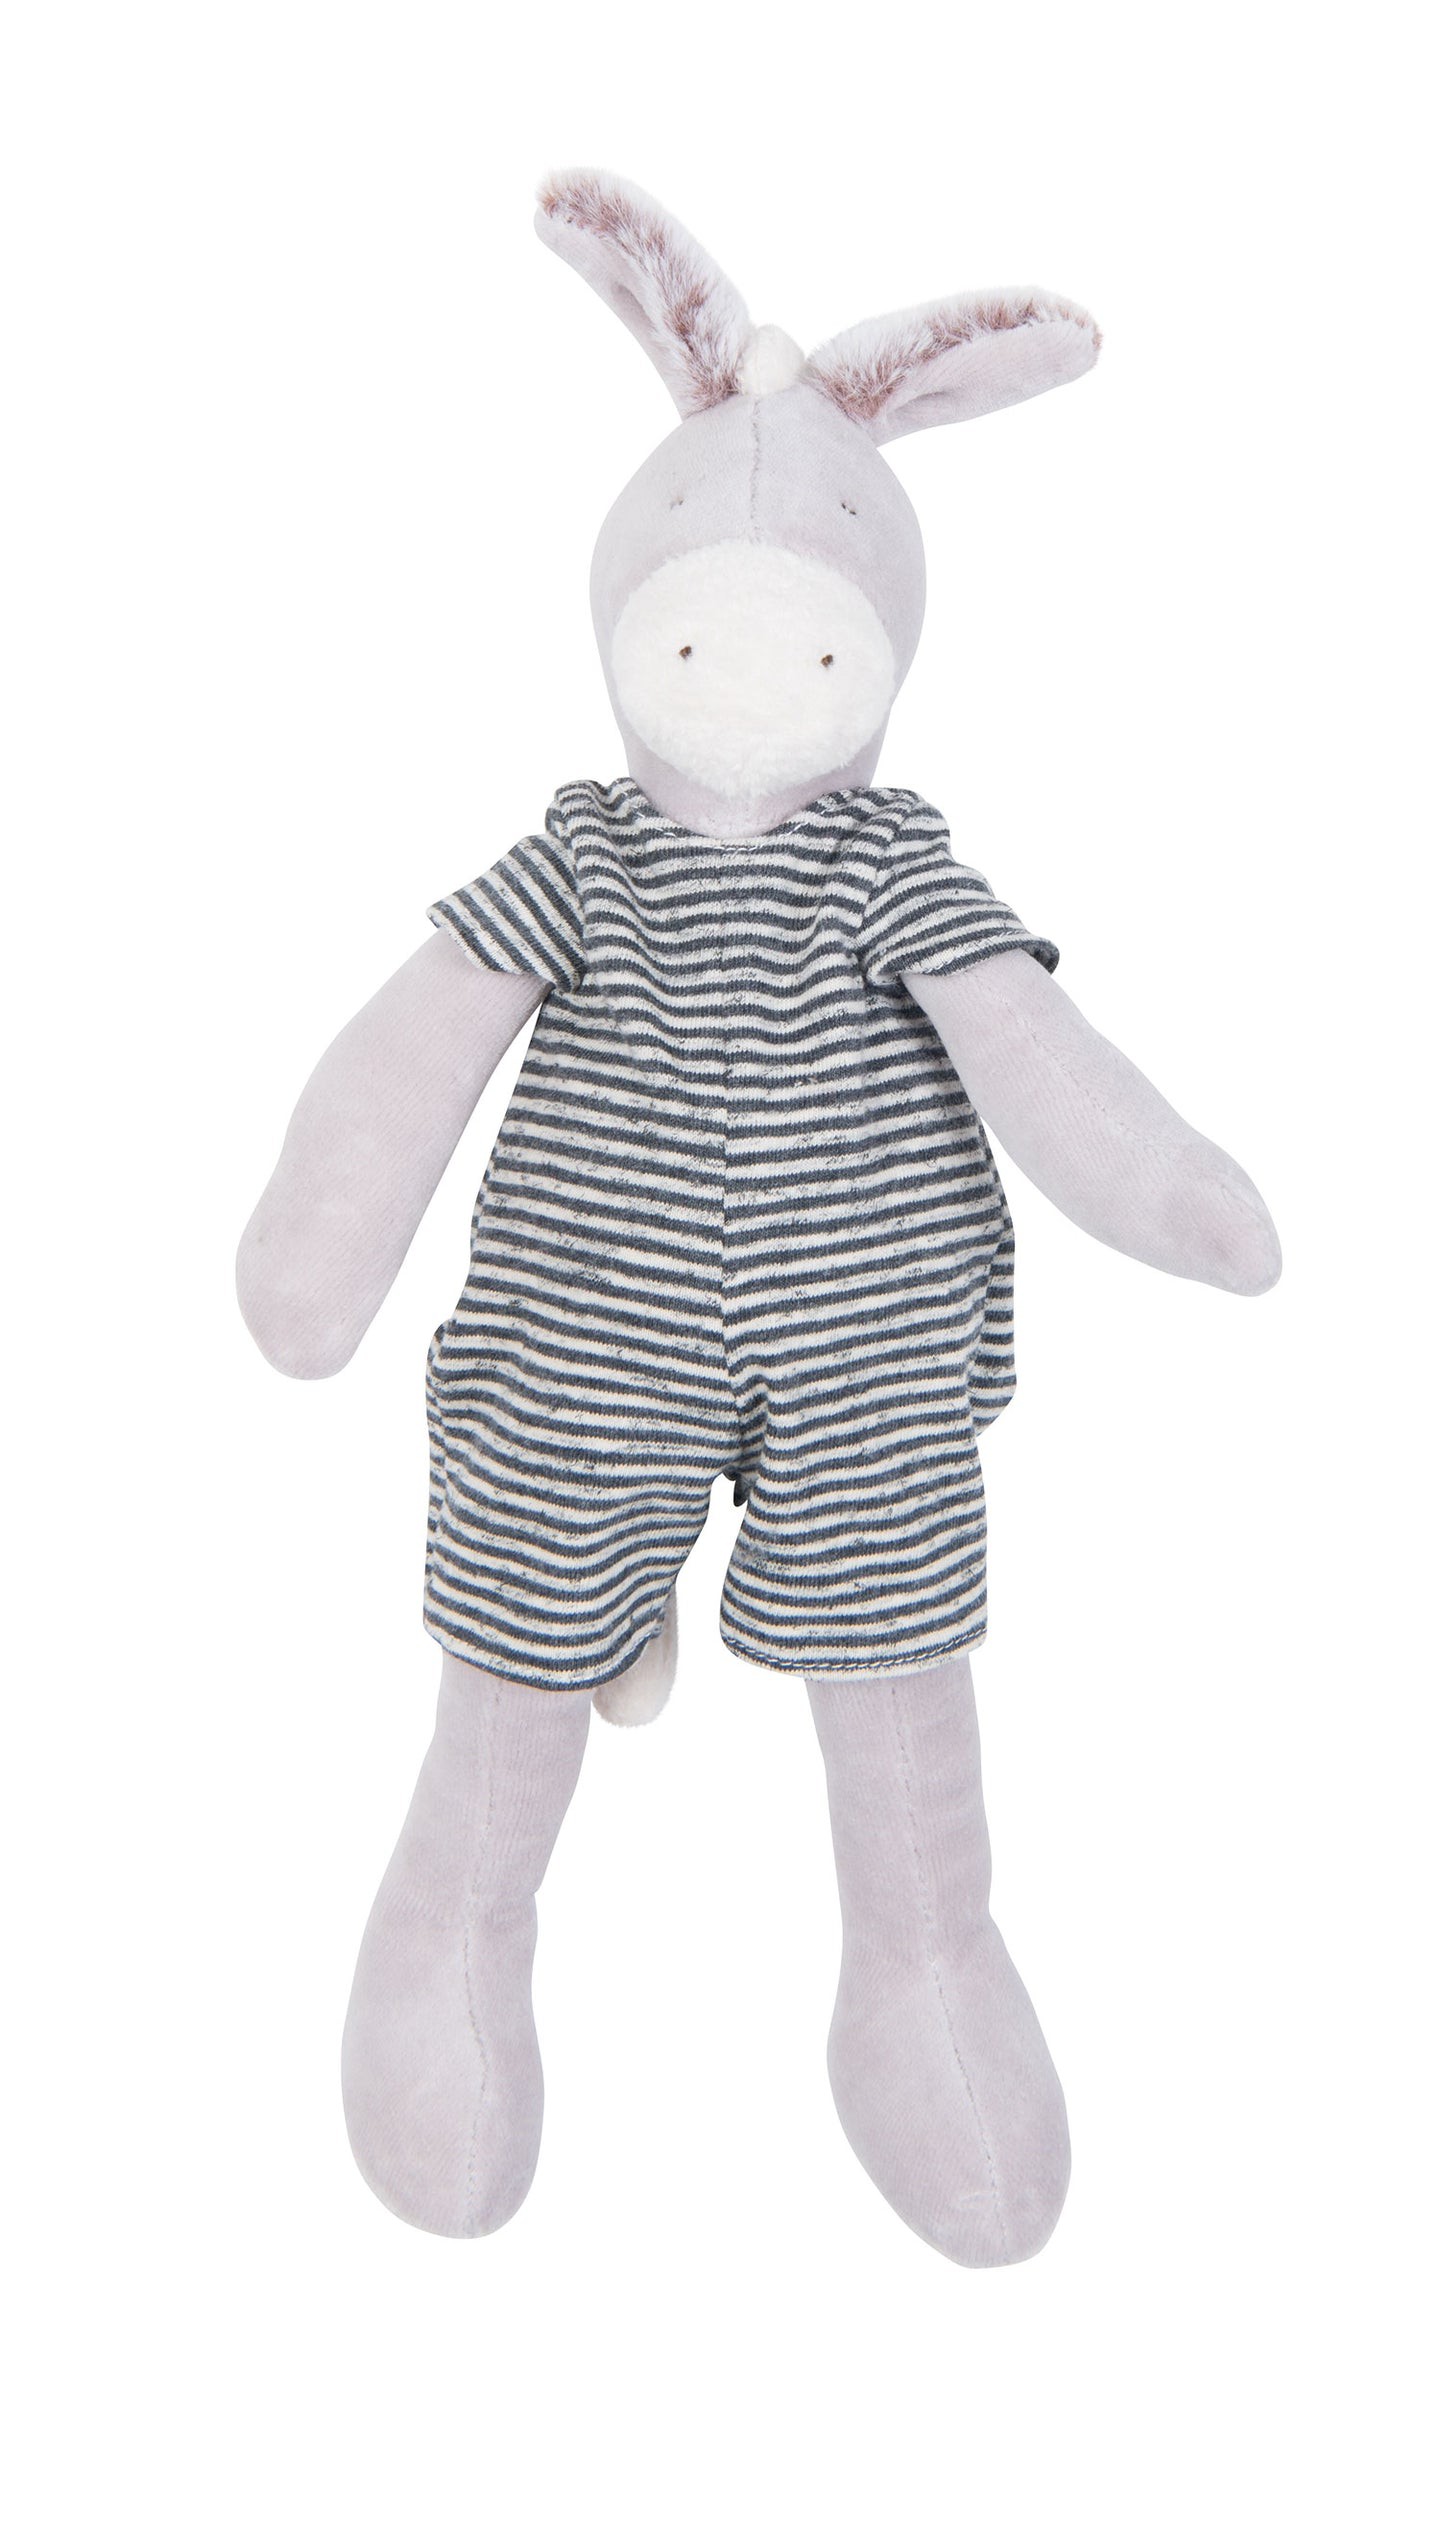 Barnabé the Donkey, with his soft little ears and all dressed in stripes, is just waiting to enjoy gentle cuddles with baby! Suitable from newborn, but still enjoyed many years later.